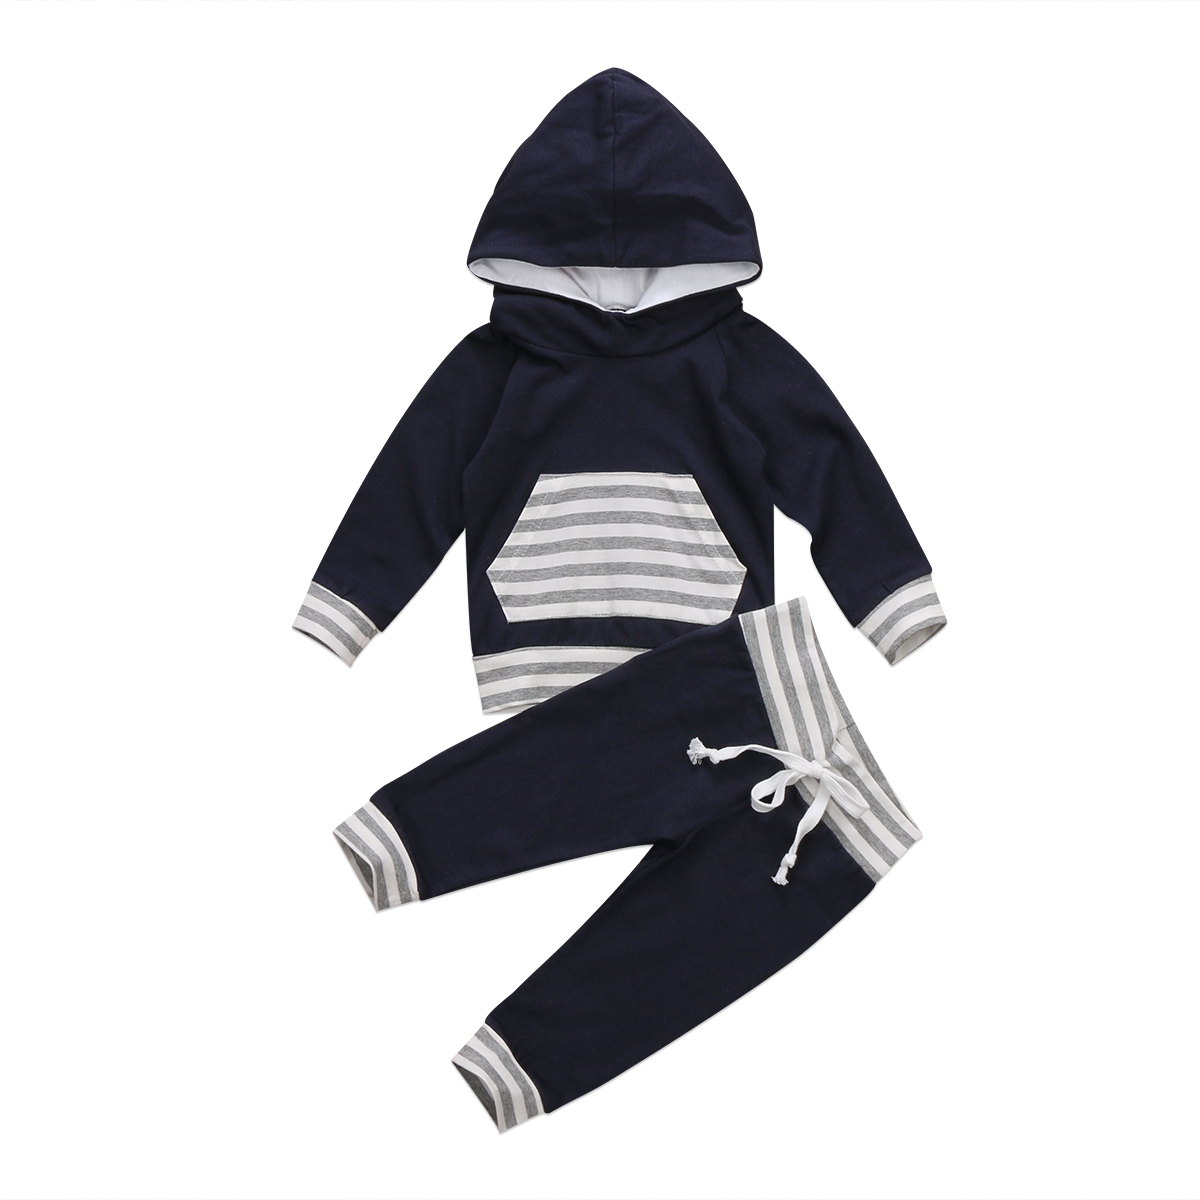 Newborn Toddled Kids Baby Boys Striped Hooded Tops Harlem Pants Leggings 2Pcs Children Spring Fall Outfits Set Clothes